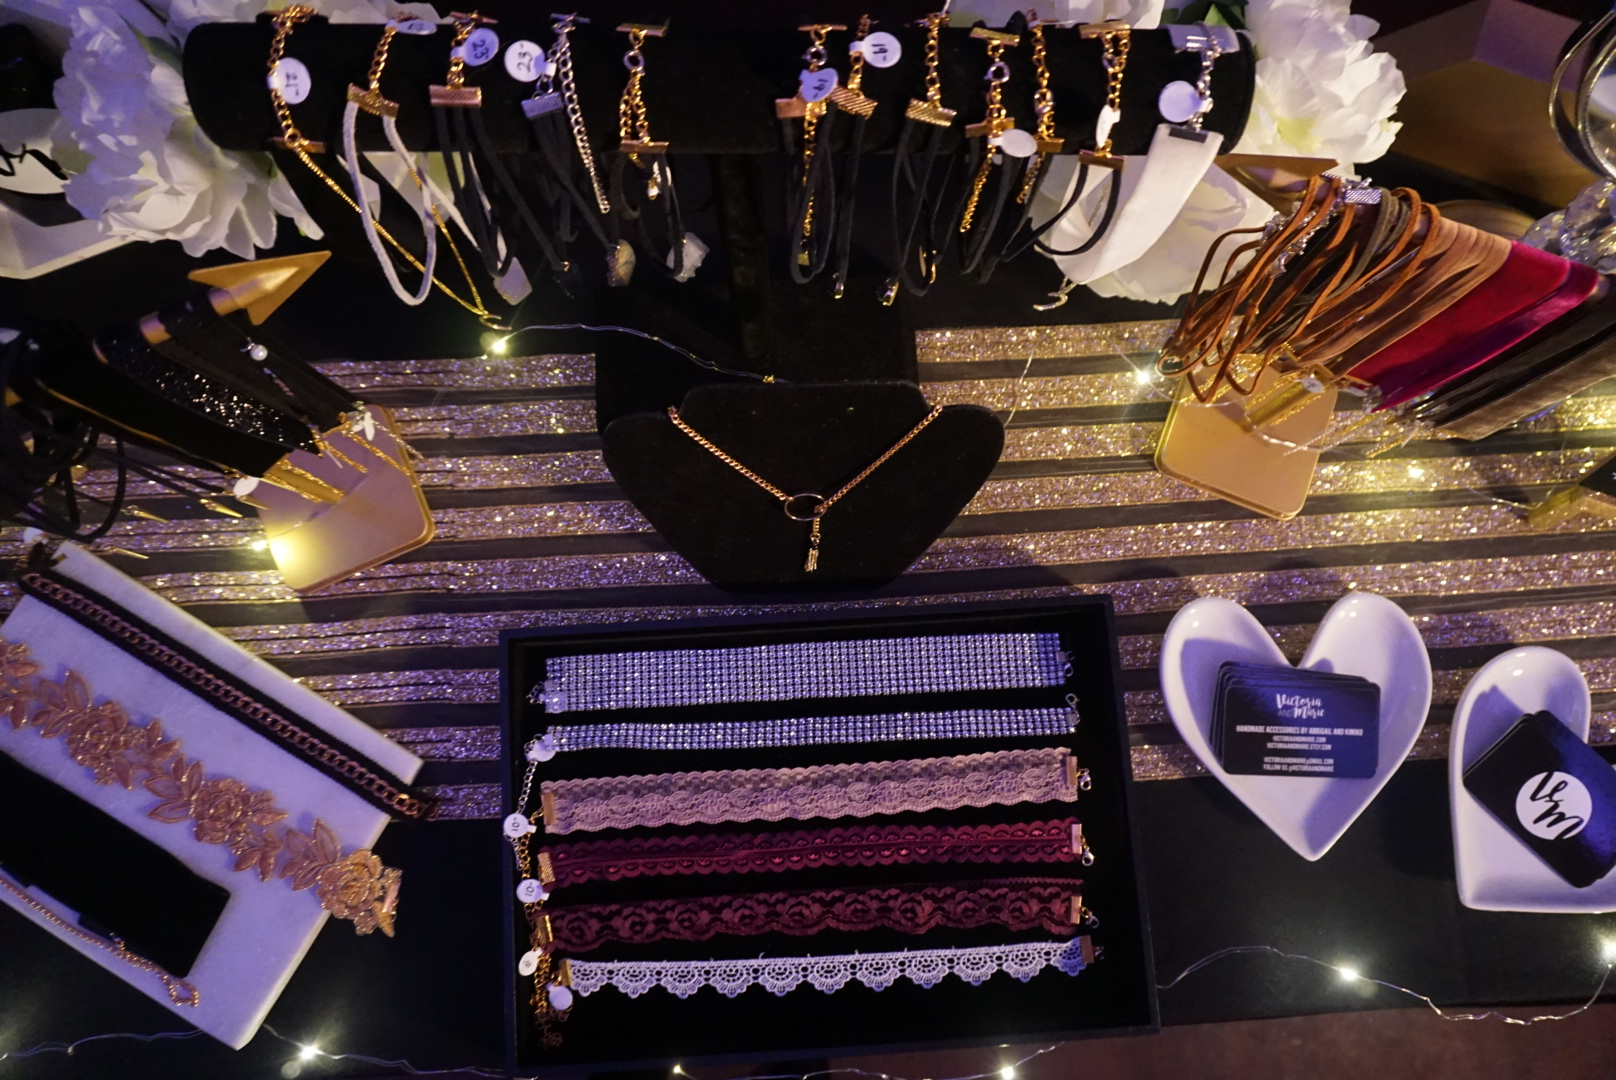 All the chokers we had at the beginning of the night. We sold over 20 chokers!